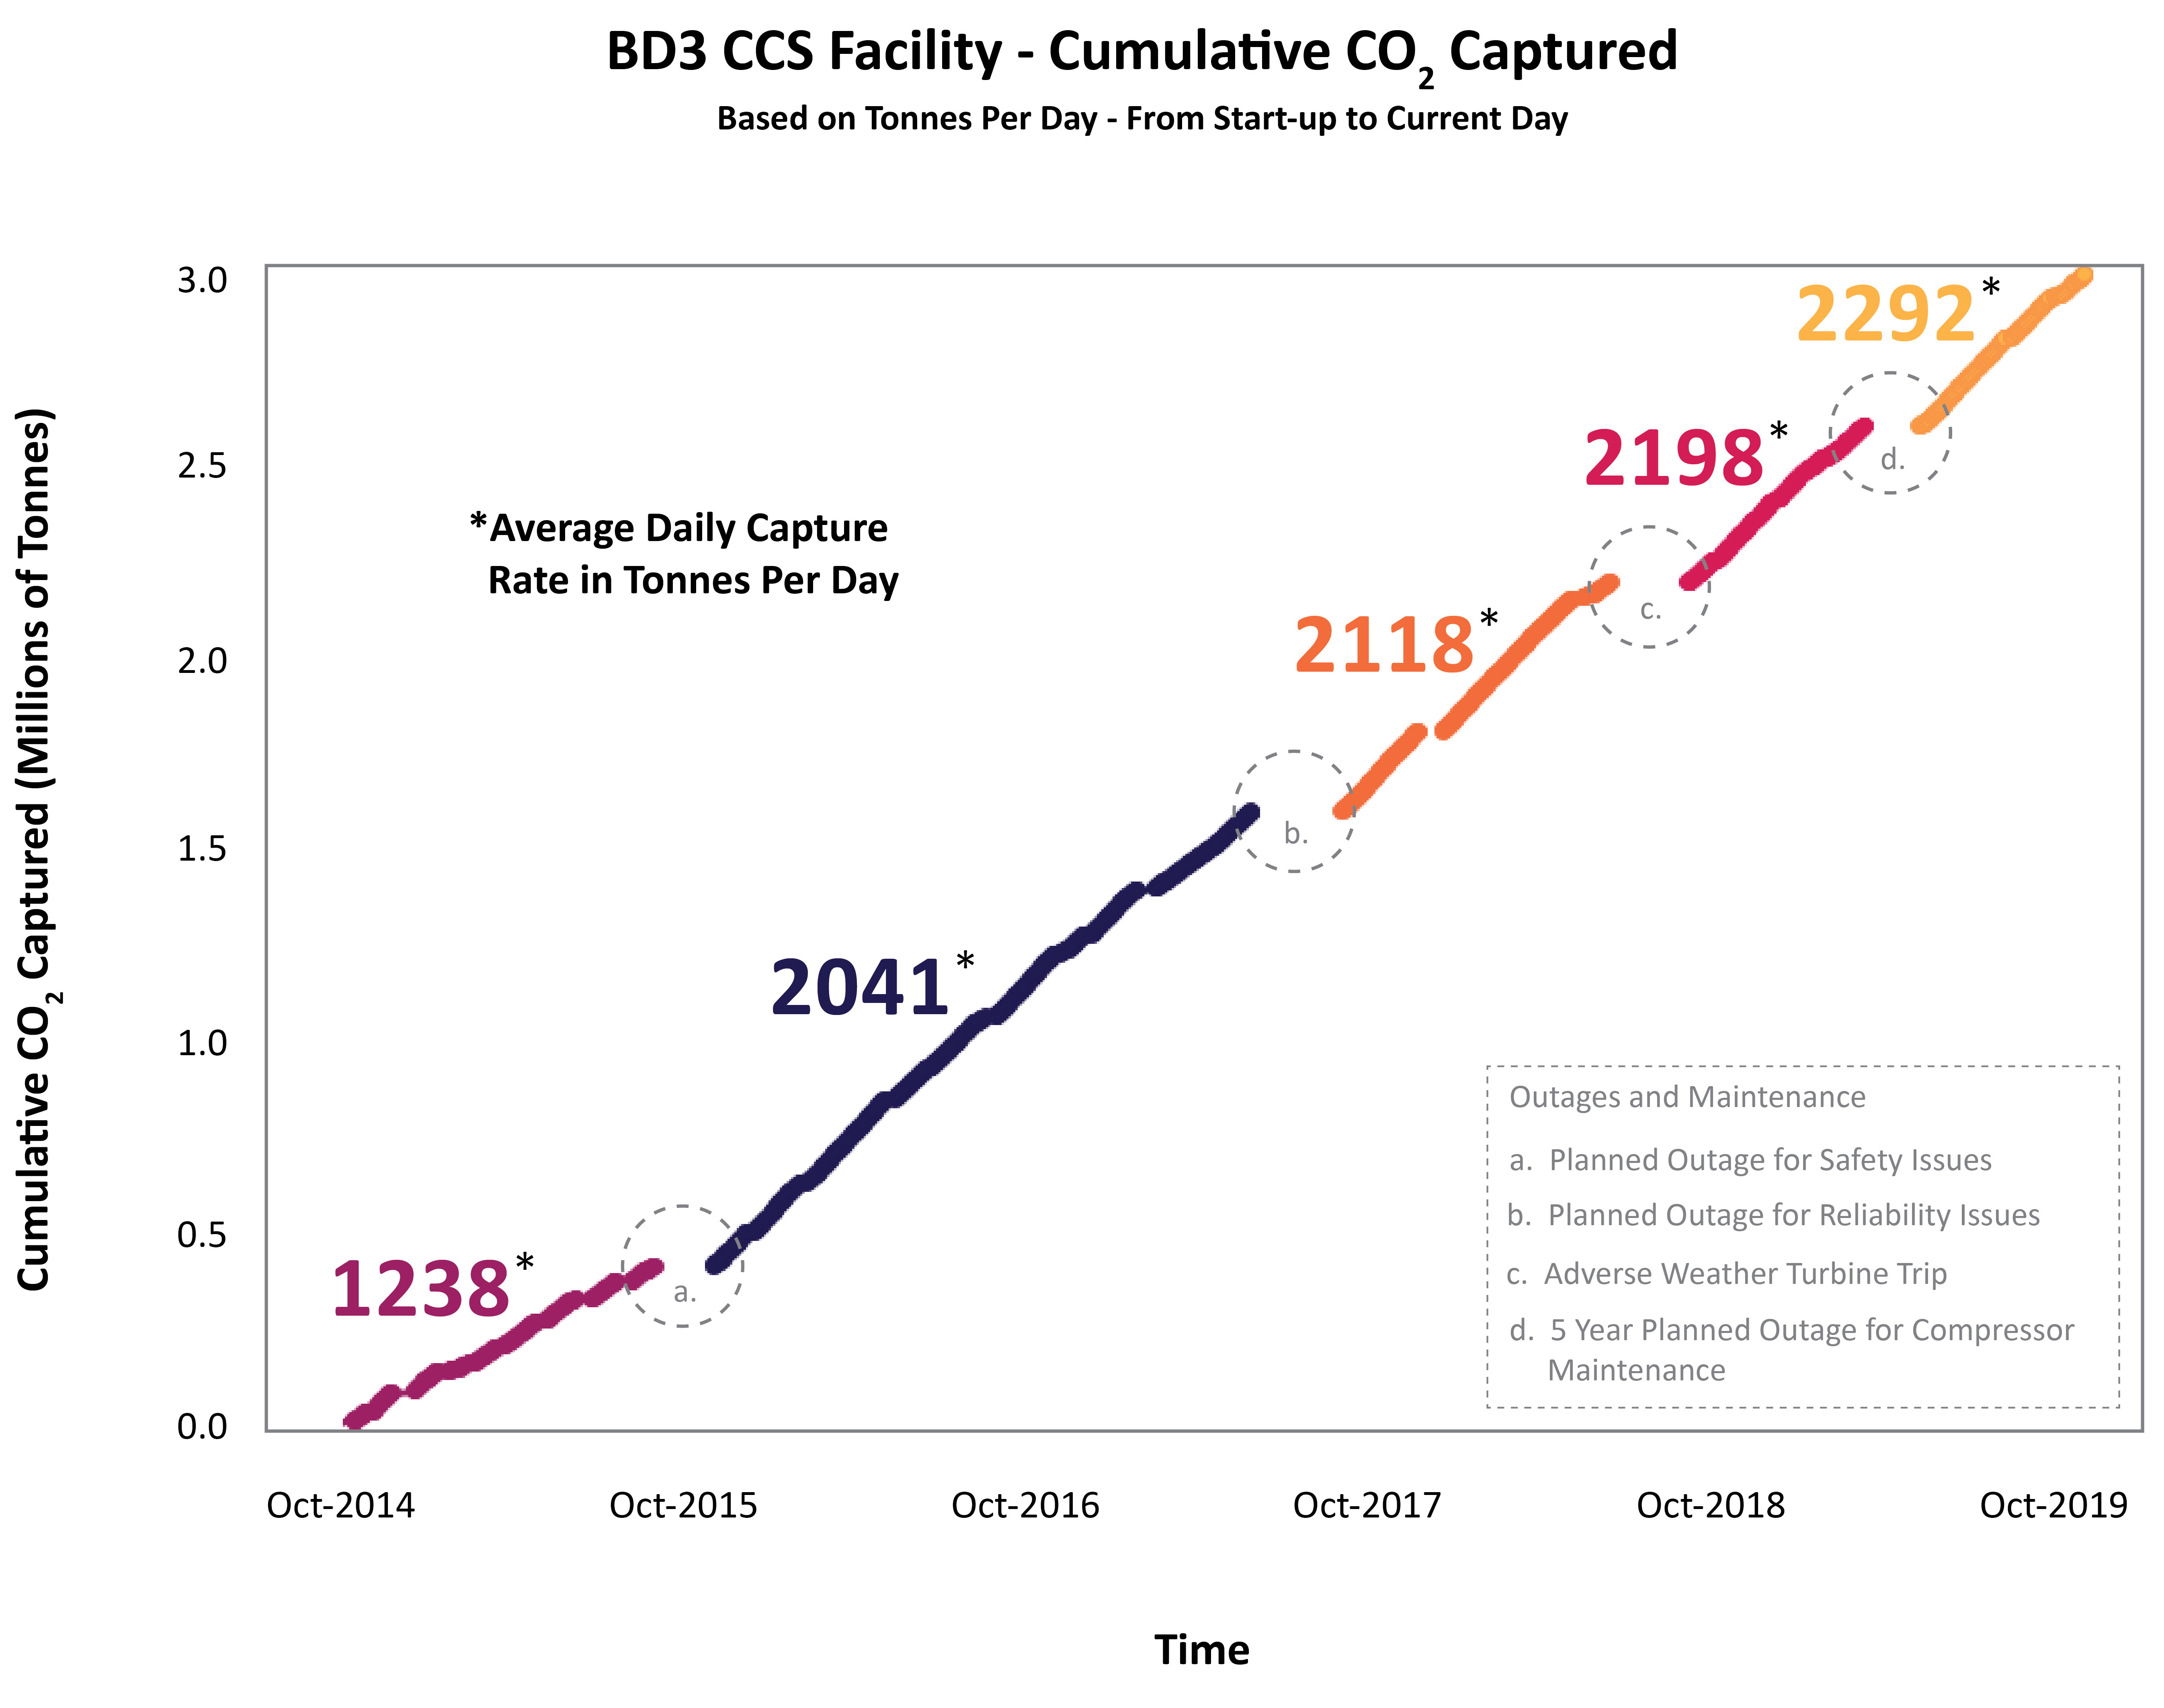 Figure 2. Summary of Cumulative CO2 Capture